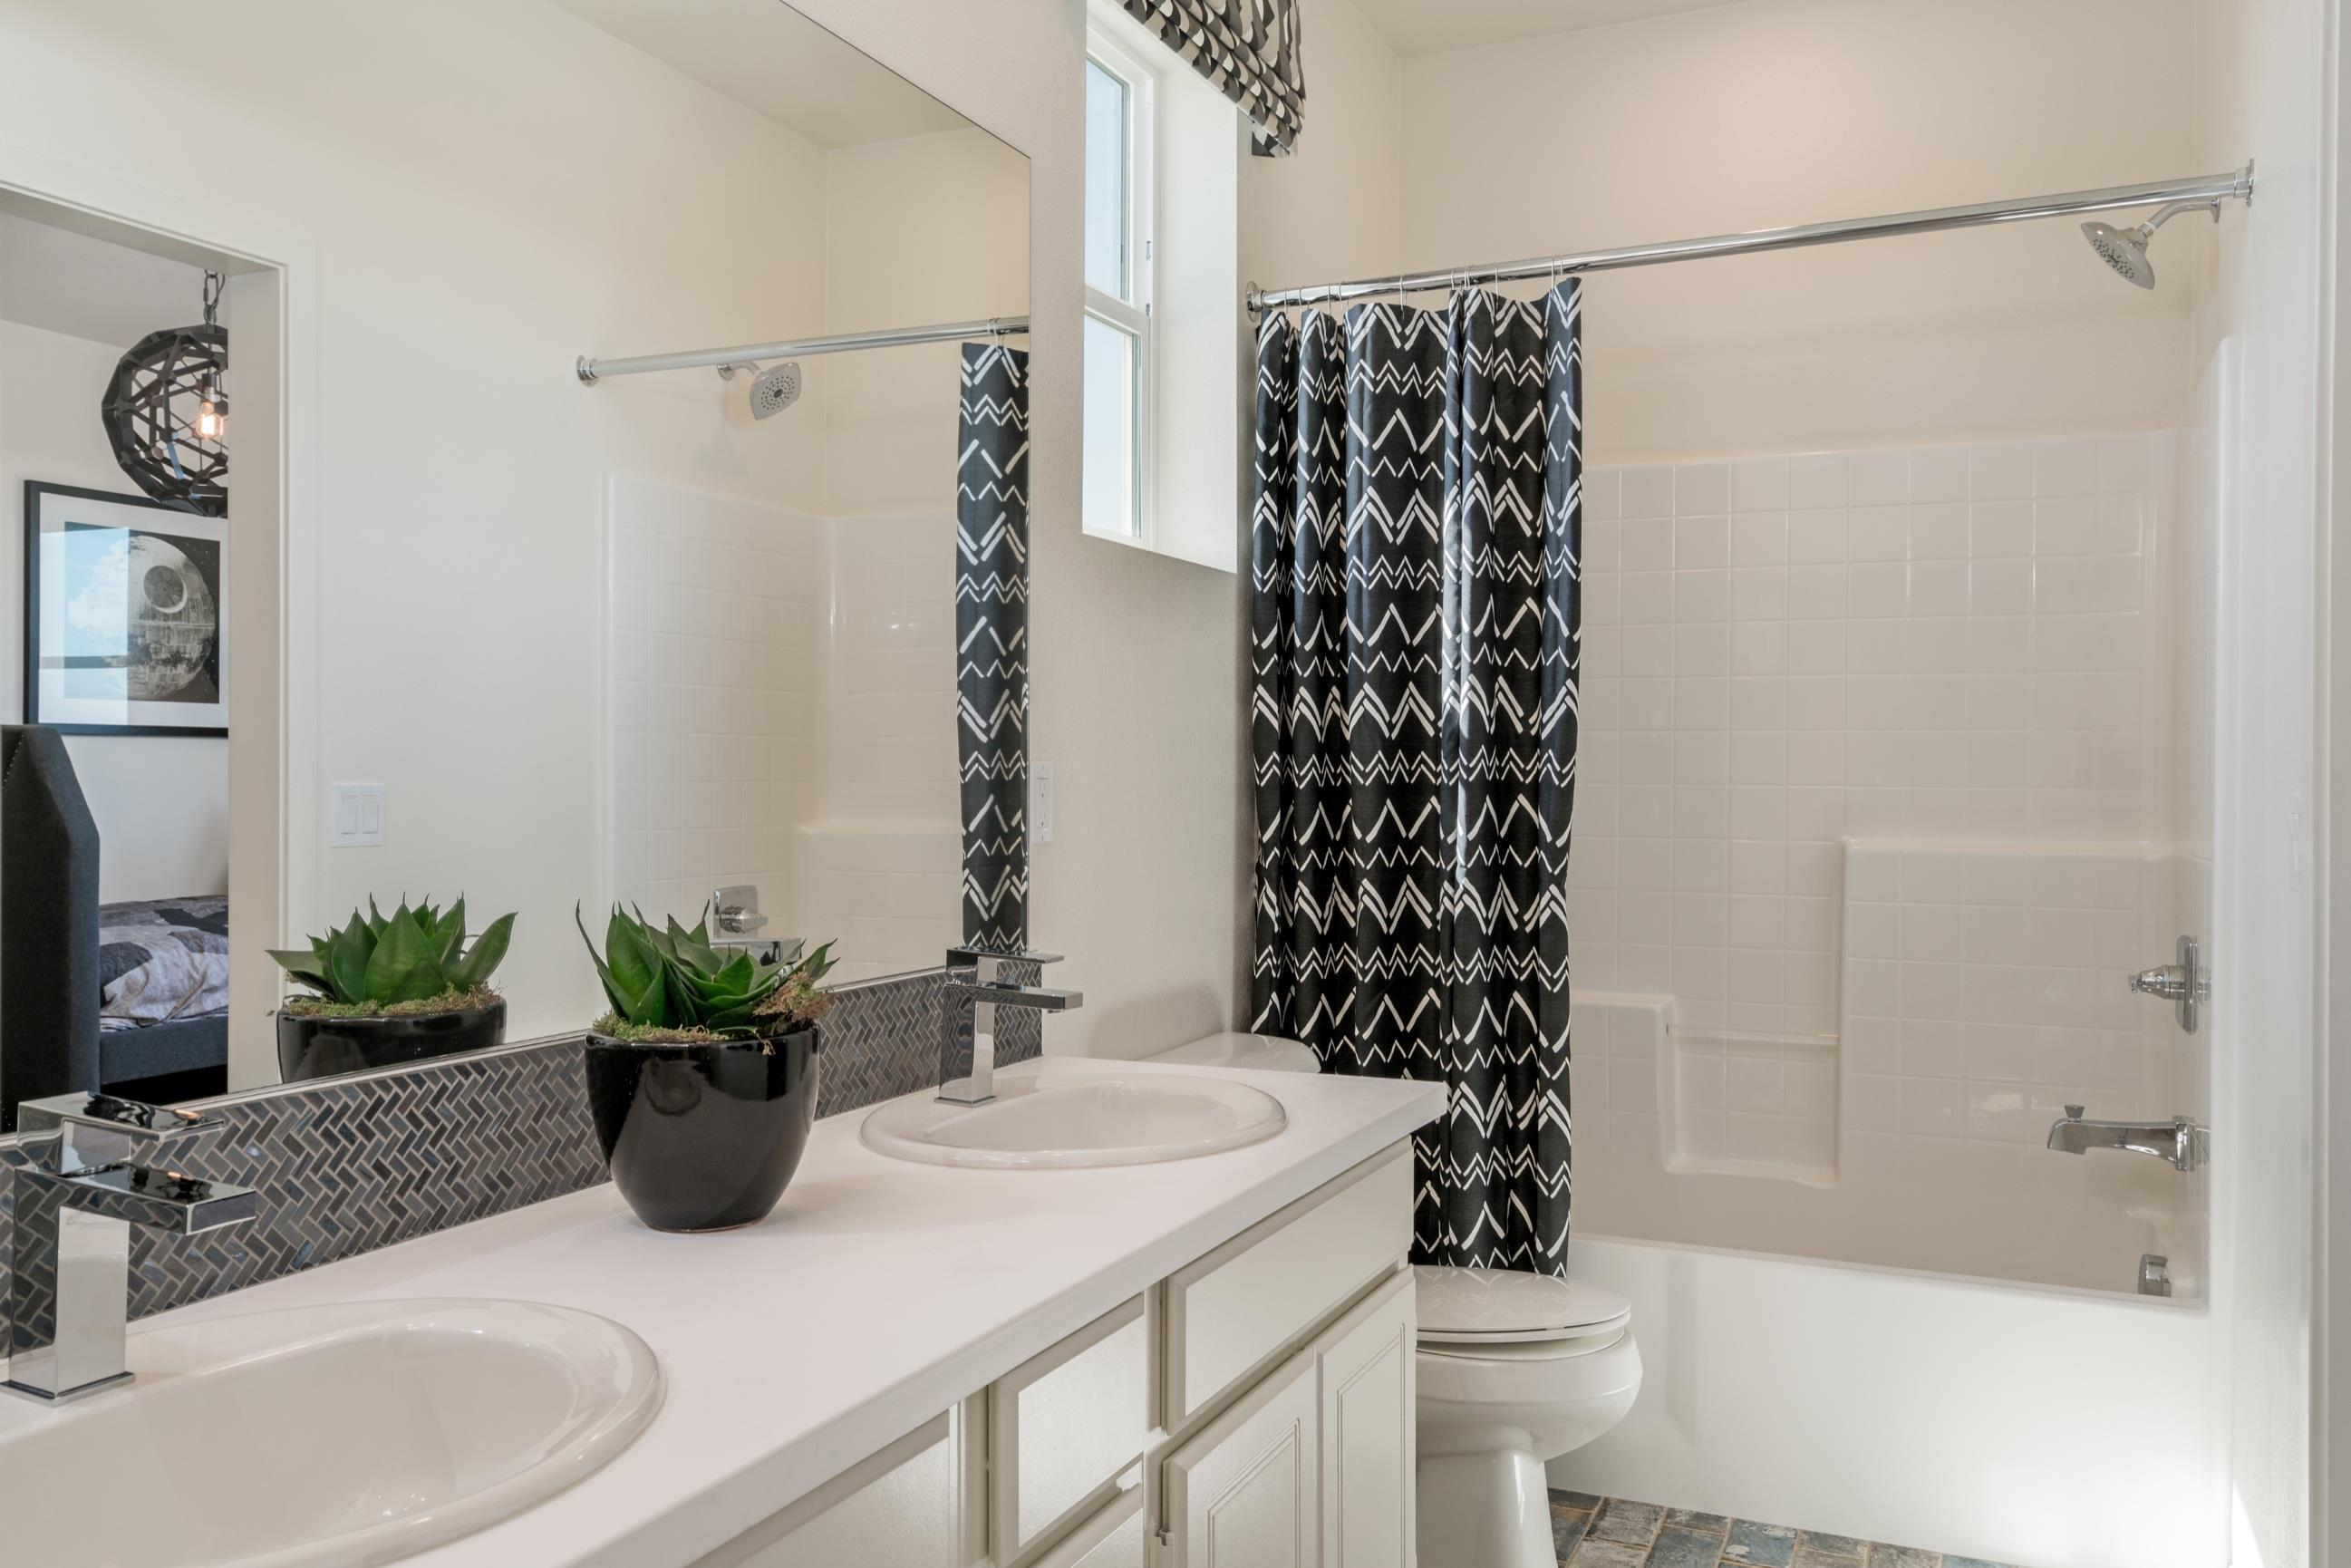 Bathroom featured in the Plan 6 By Heritage Building & Dev't in San Diego, CA